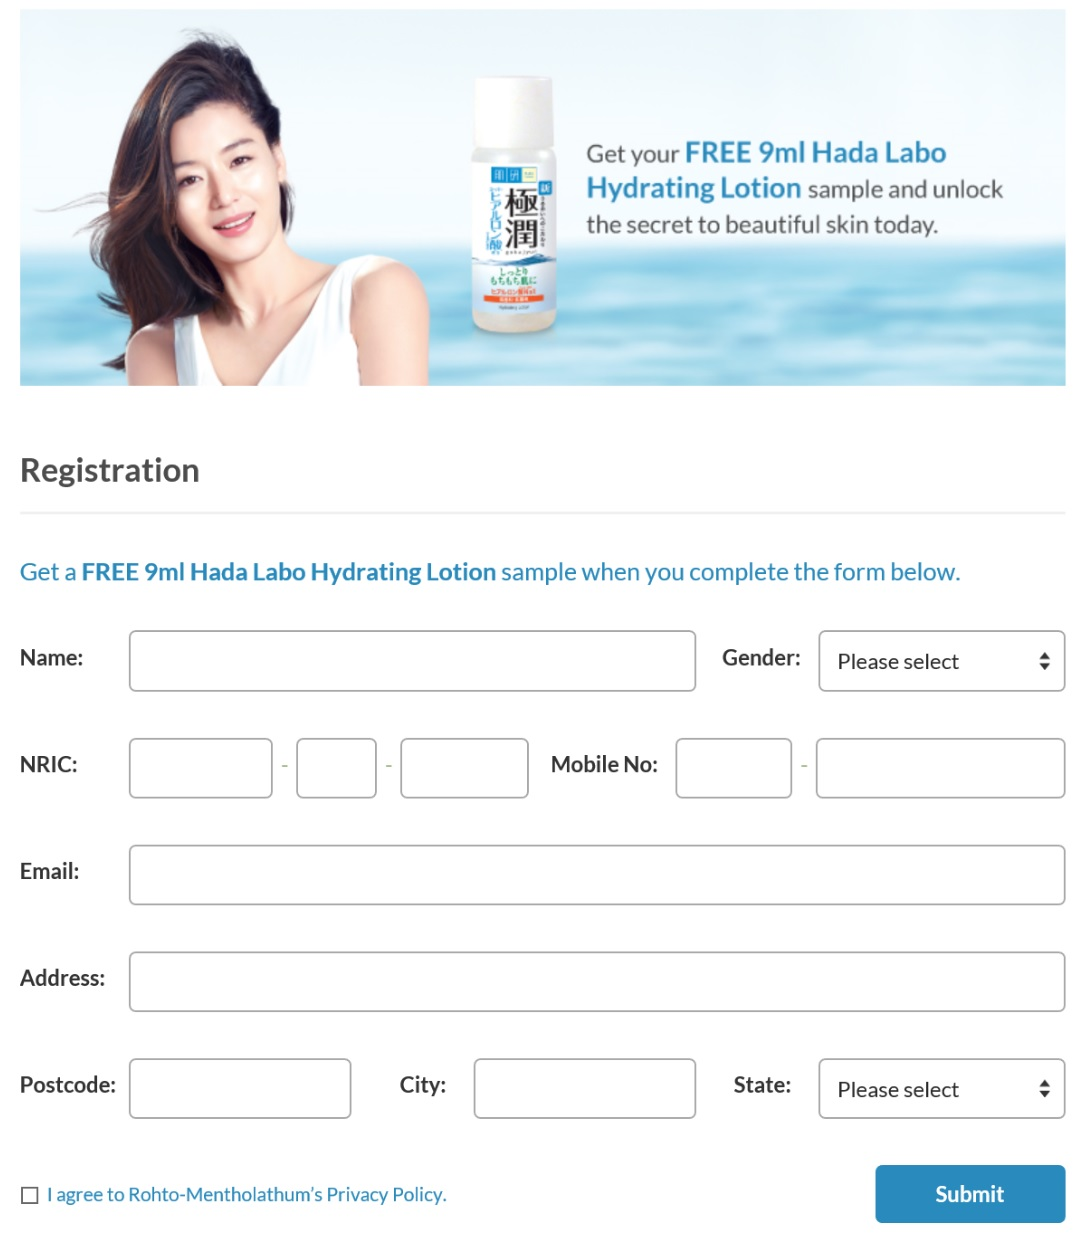 Free 9ml Hada Labo Hydrating Lotion Sample Giveaway Just Sampel Is Giving Away Complete You Detail Can Enjoy Freebies To Your Doorstep